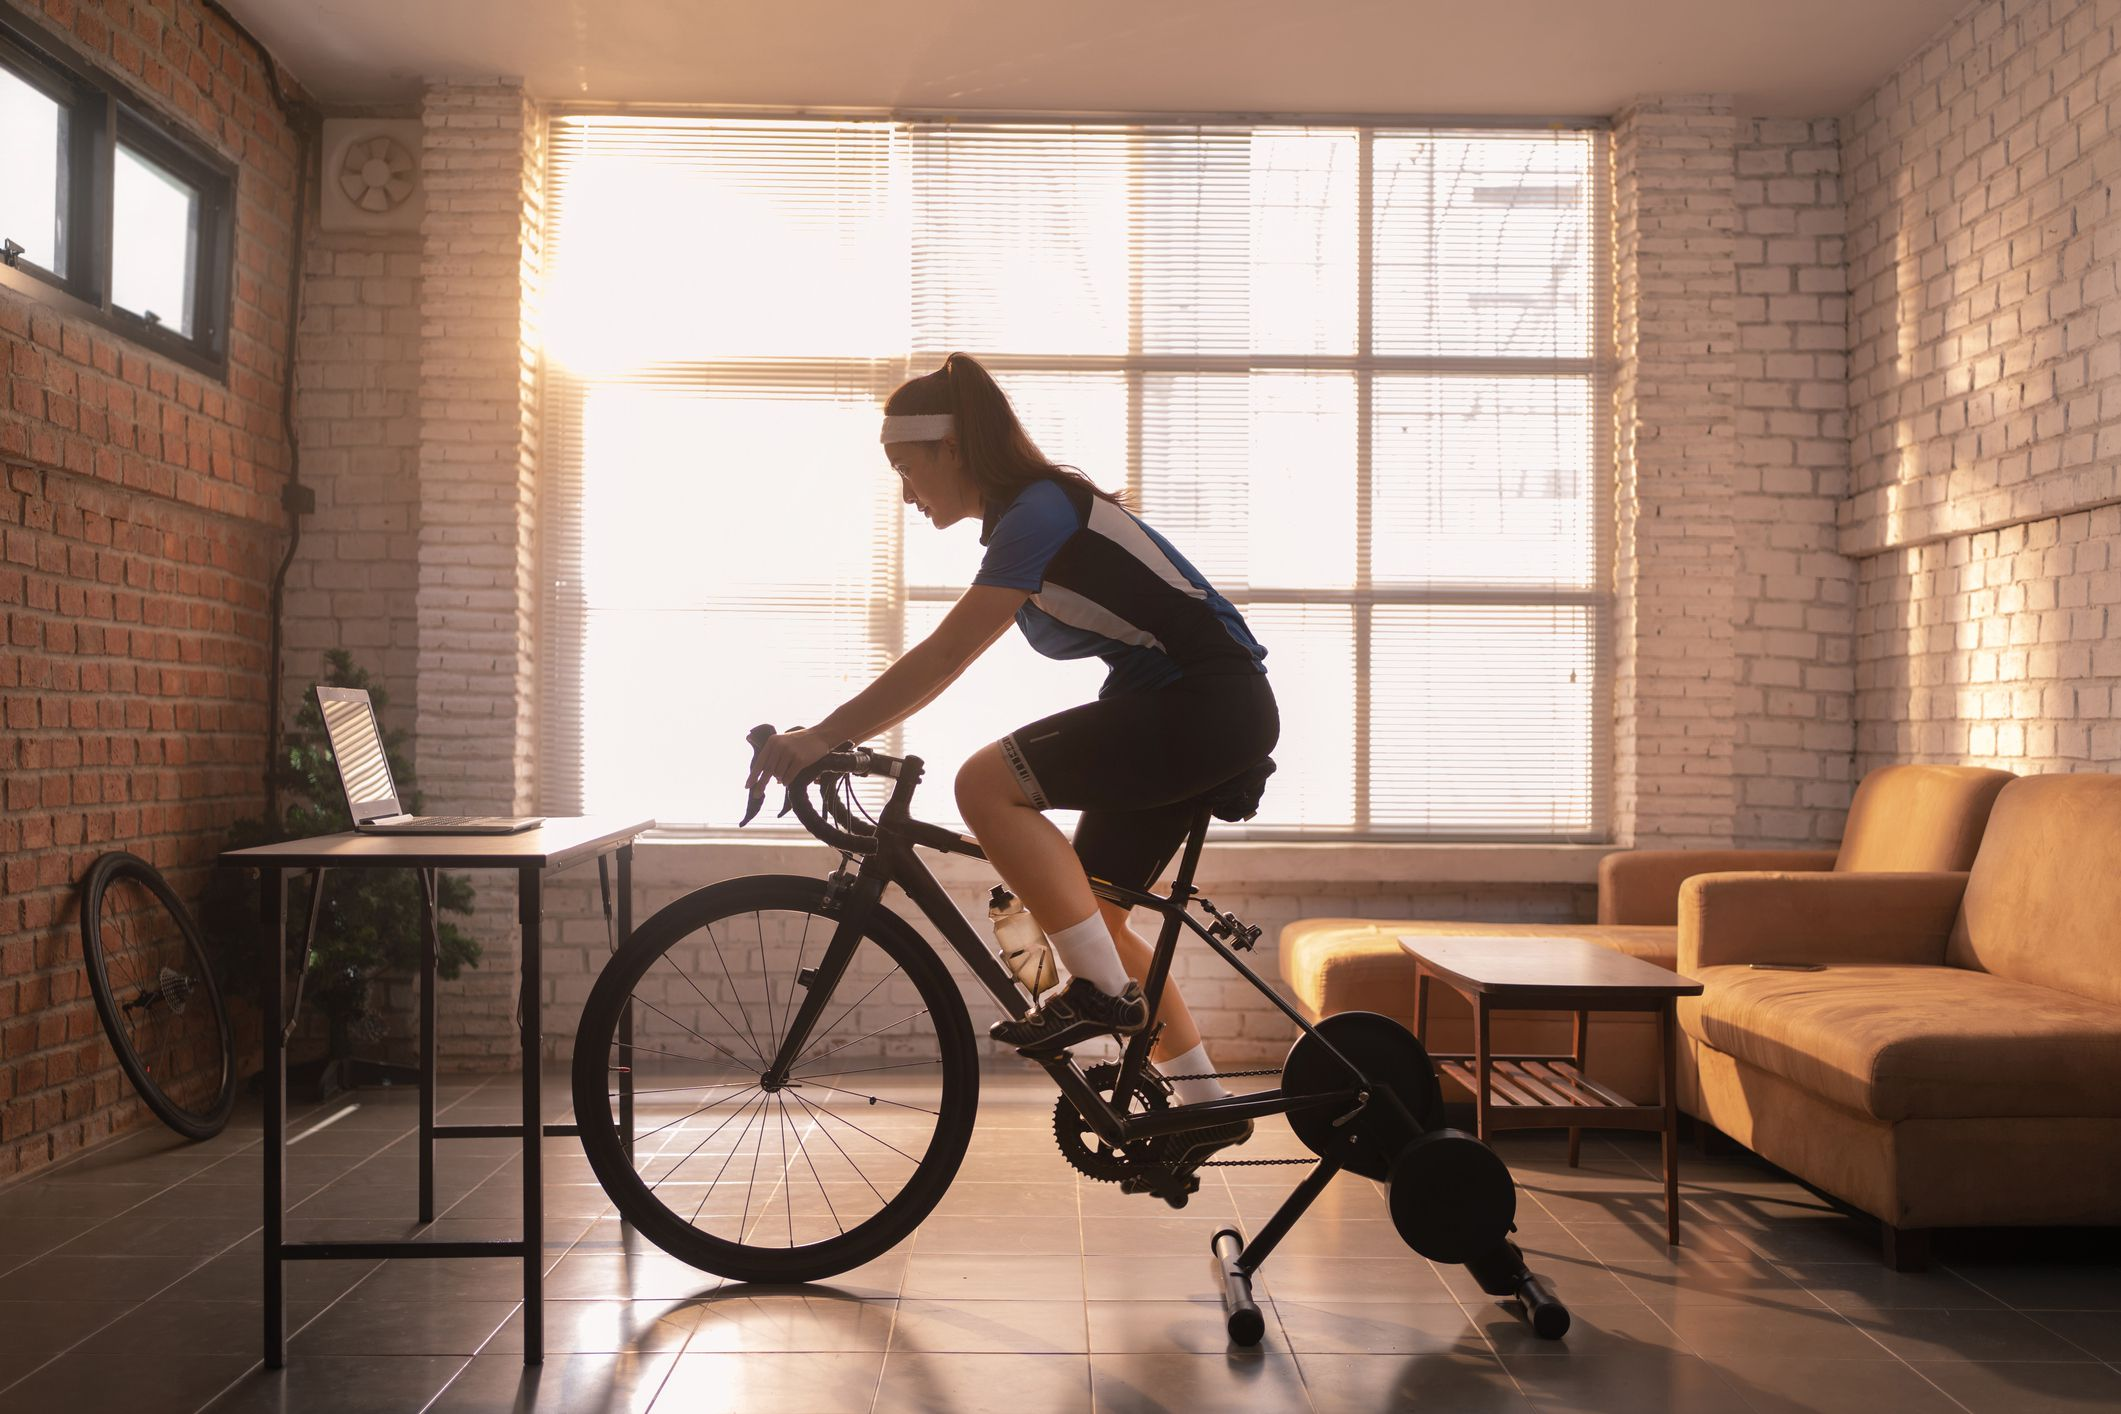 Take Your Home Workouts to the Next Level With These Stationary Bikes